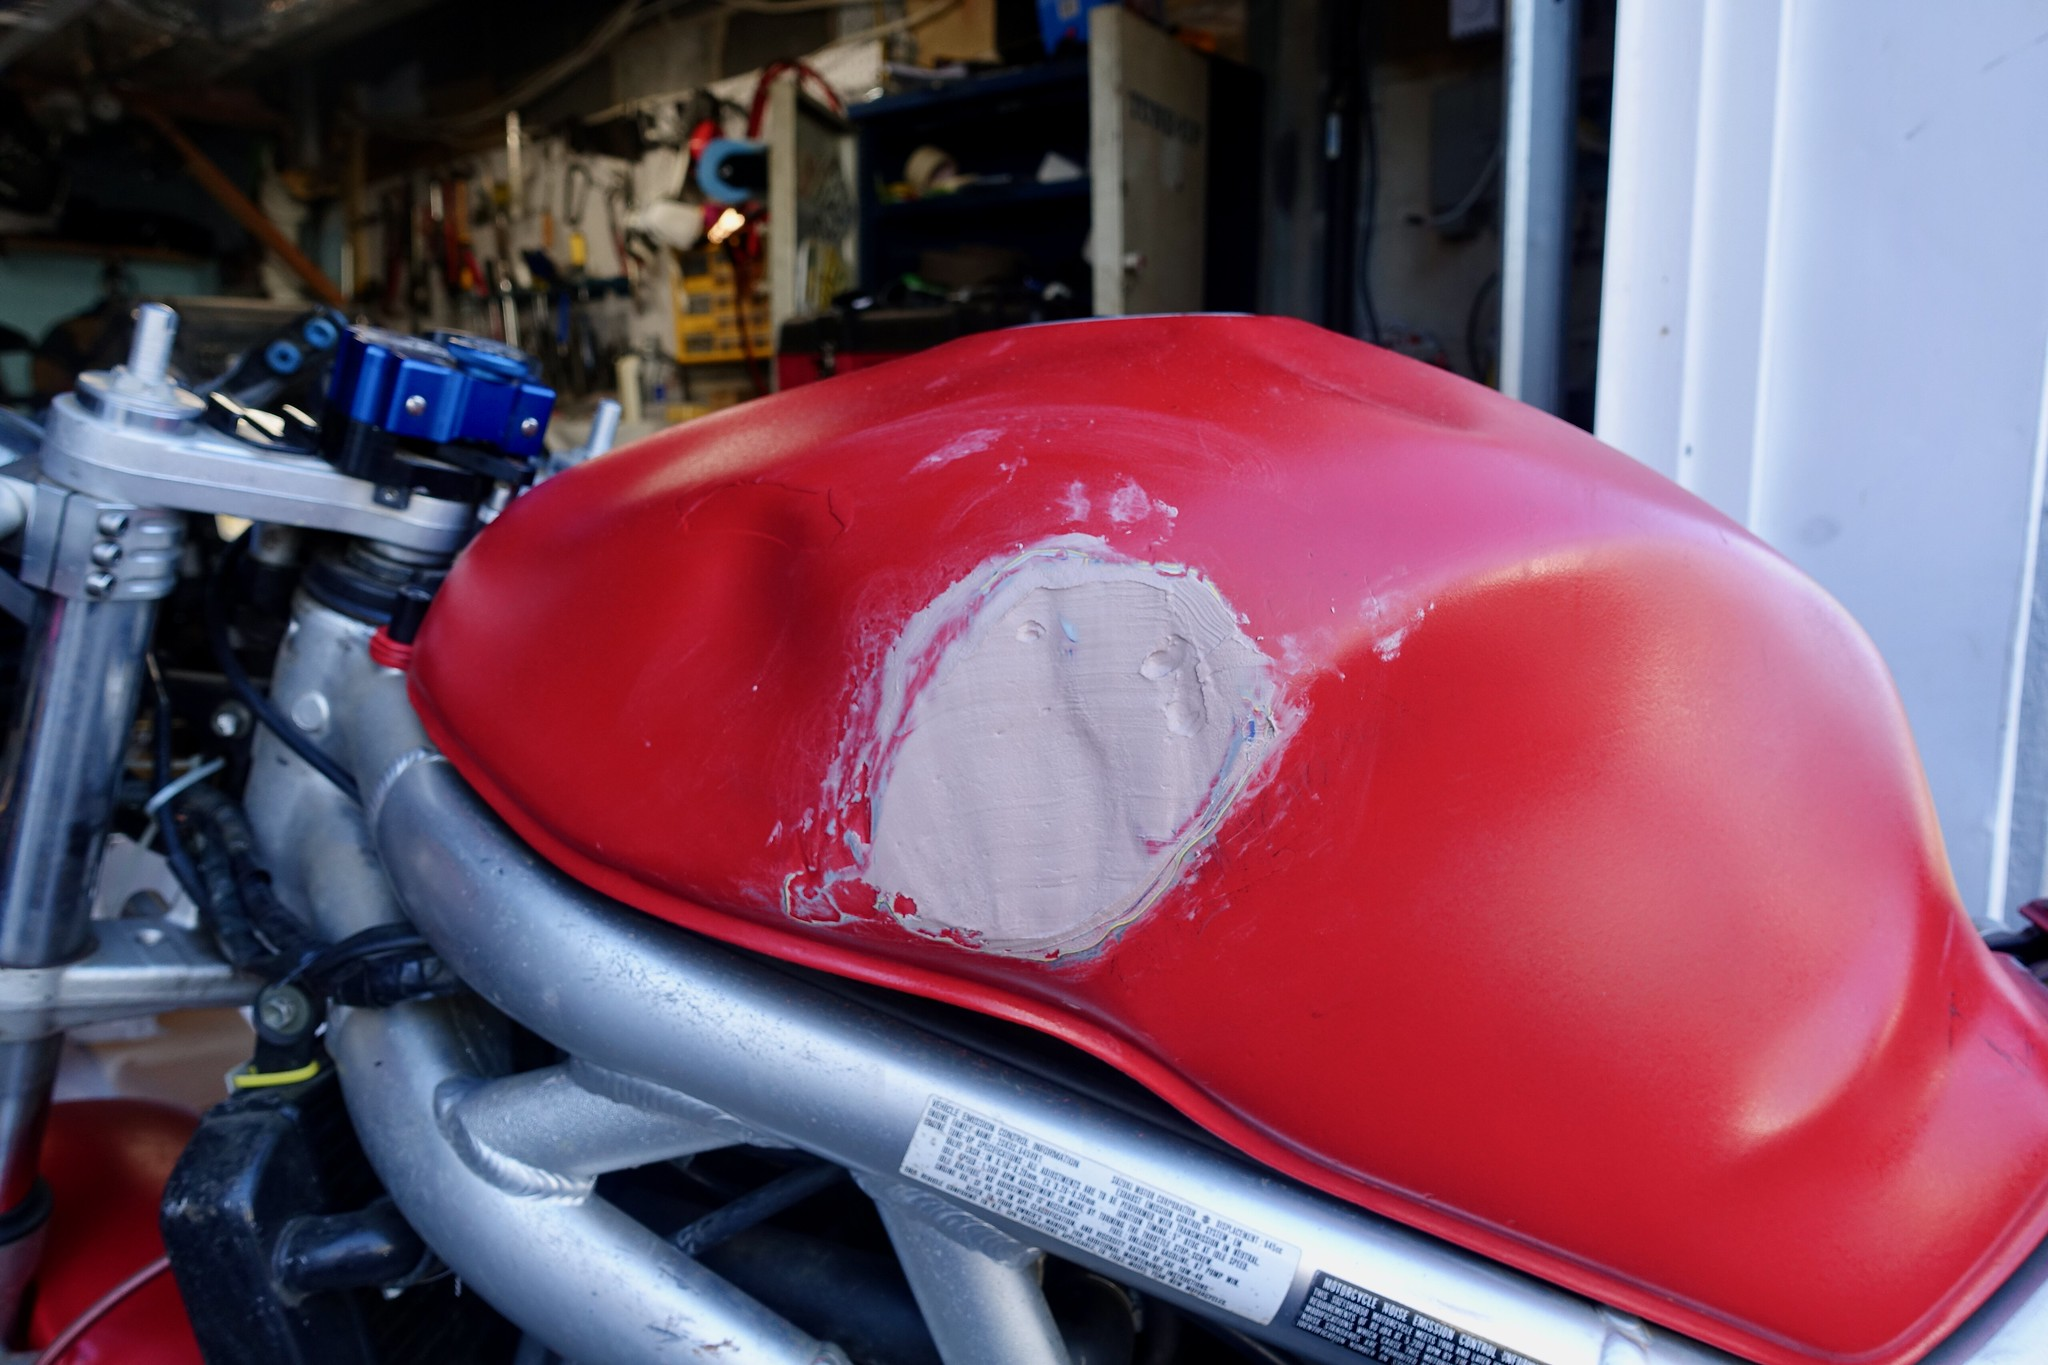 Bondo applied to a dented motorcycle tank